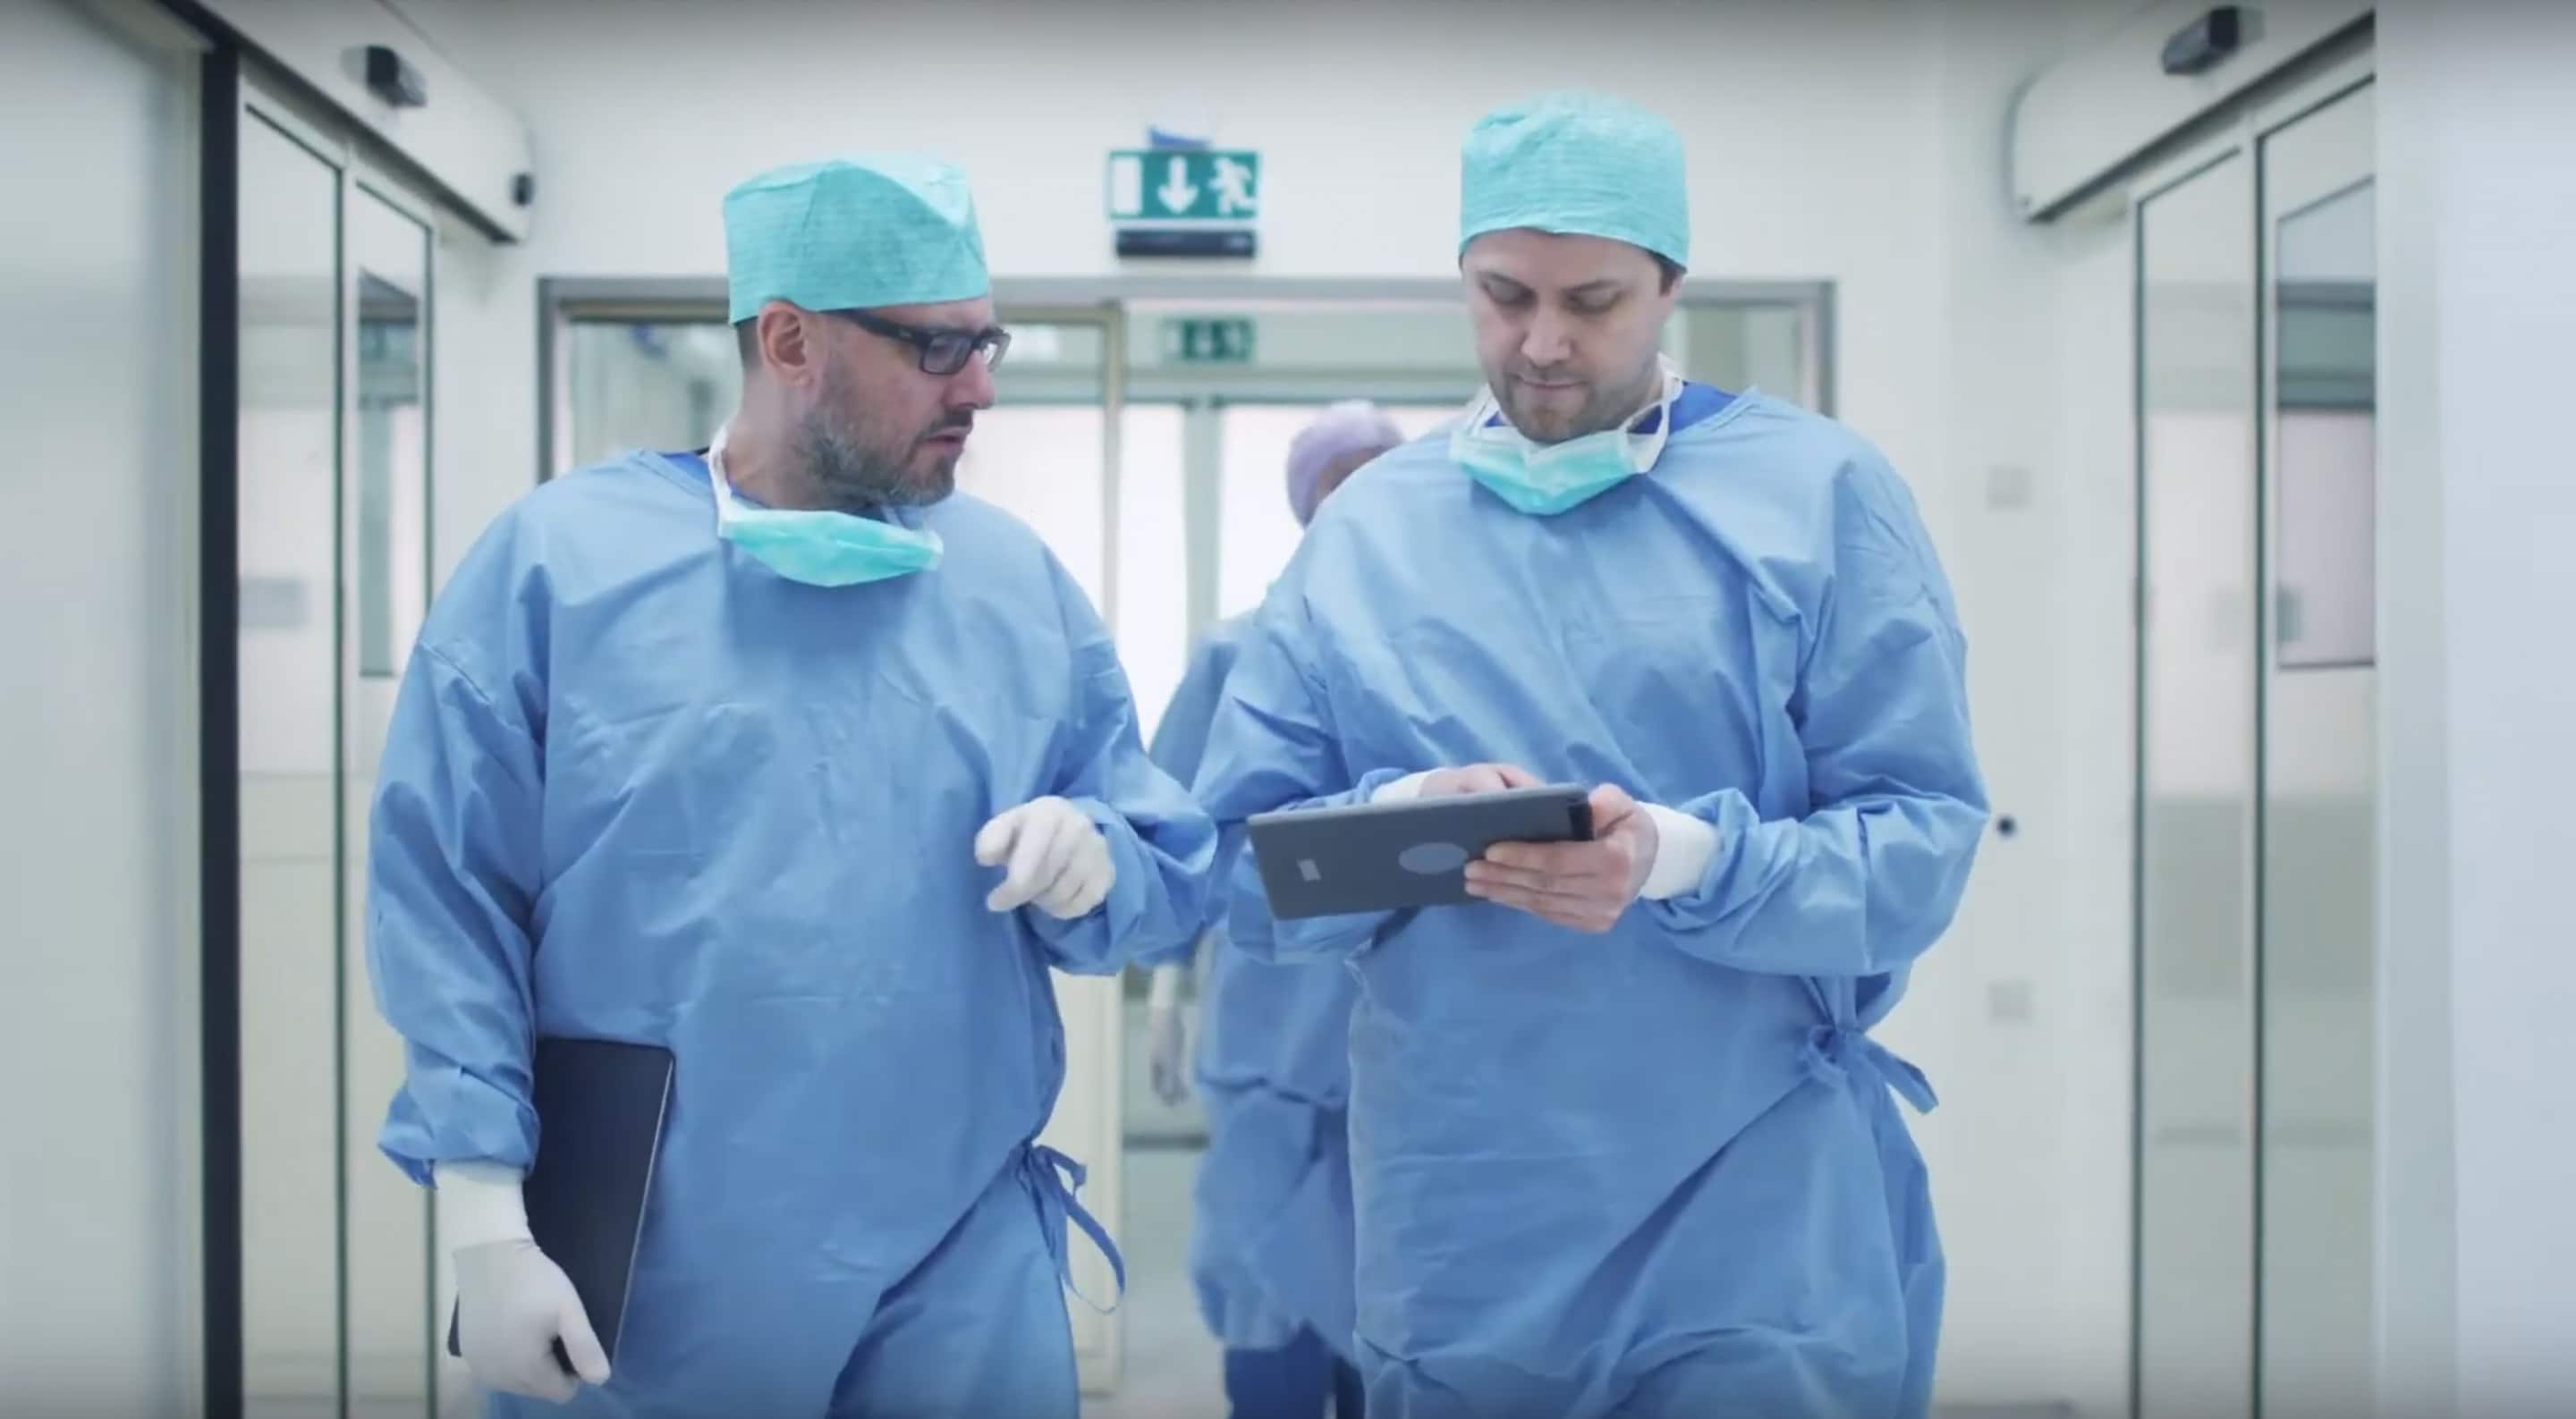 Think Research uses IBM Cloud to deliver the best medical information at the point of care